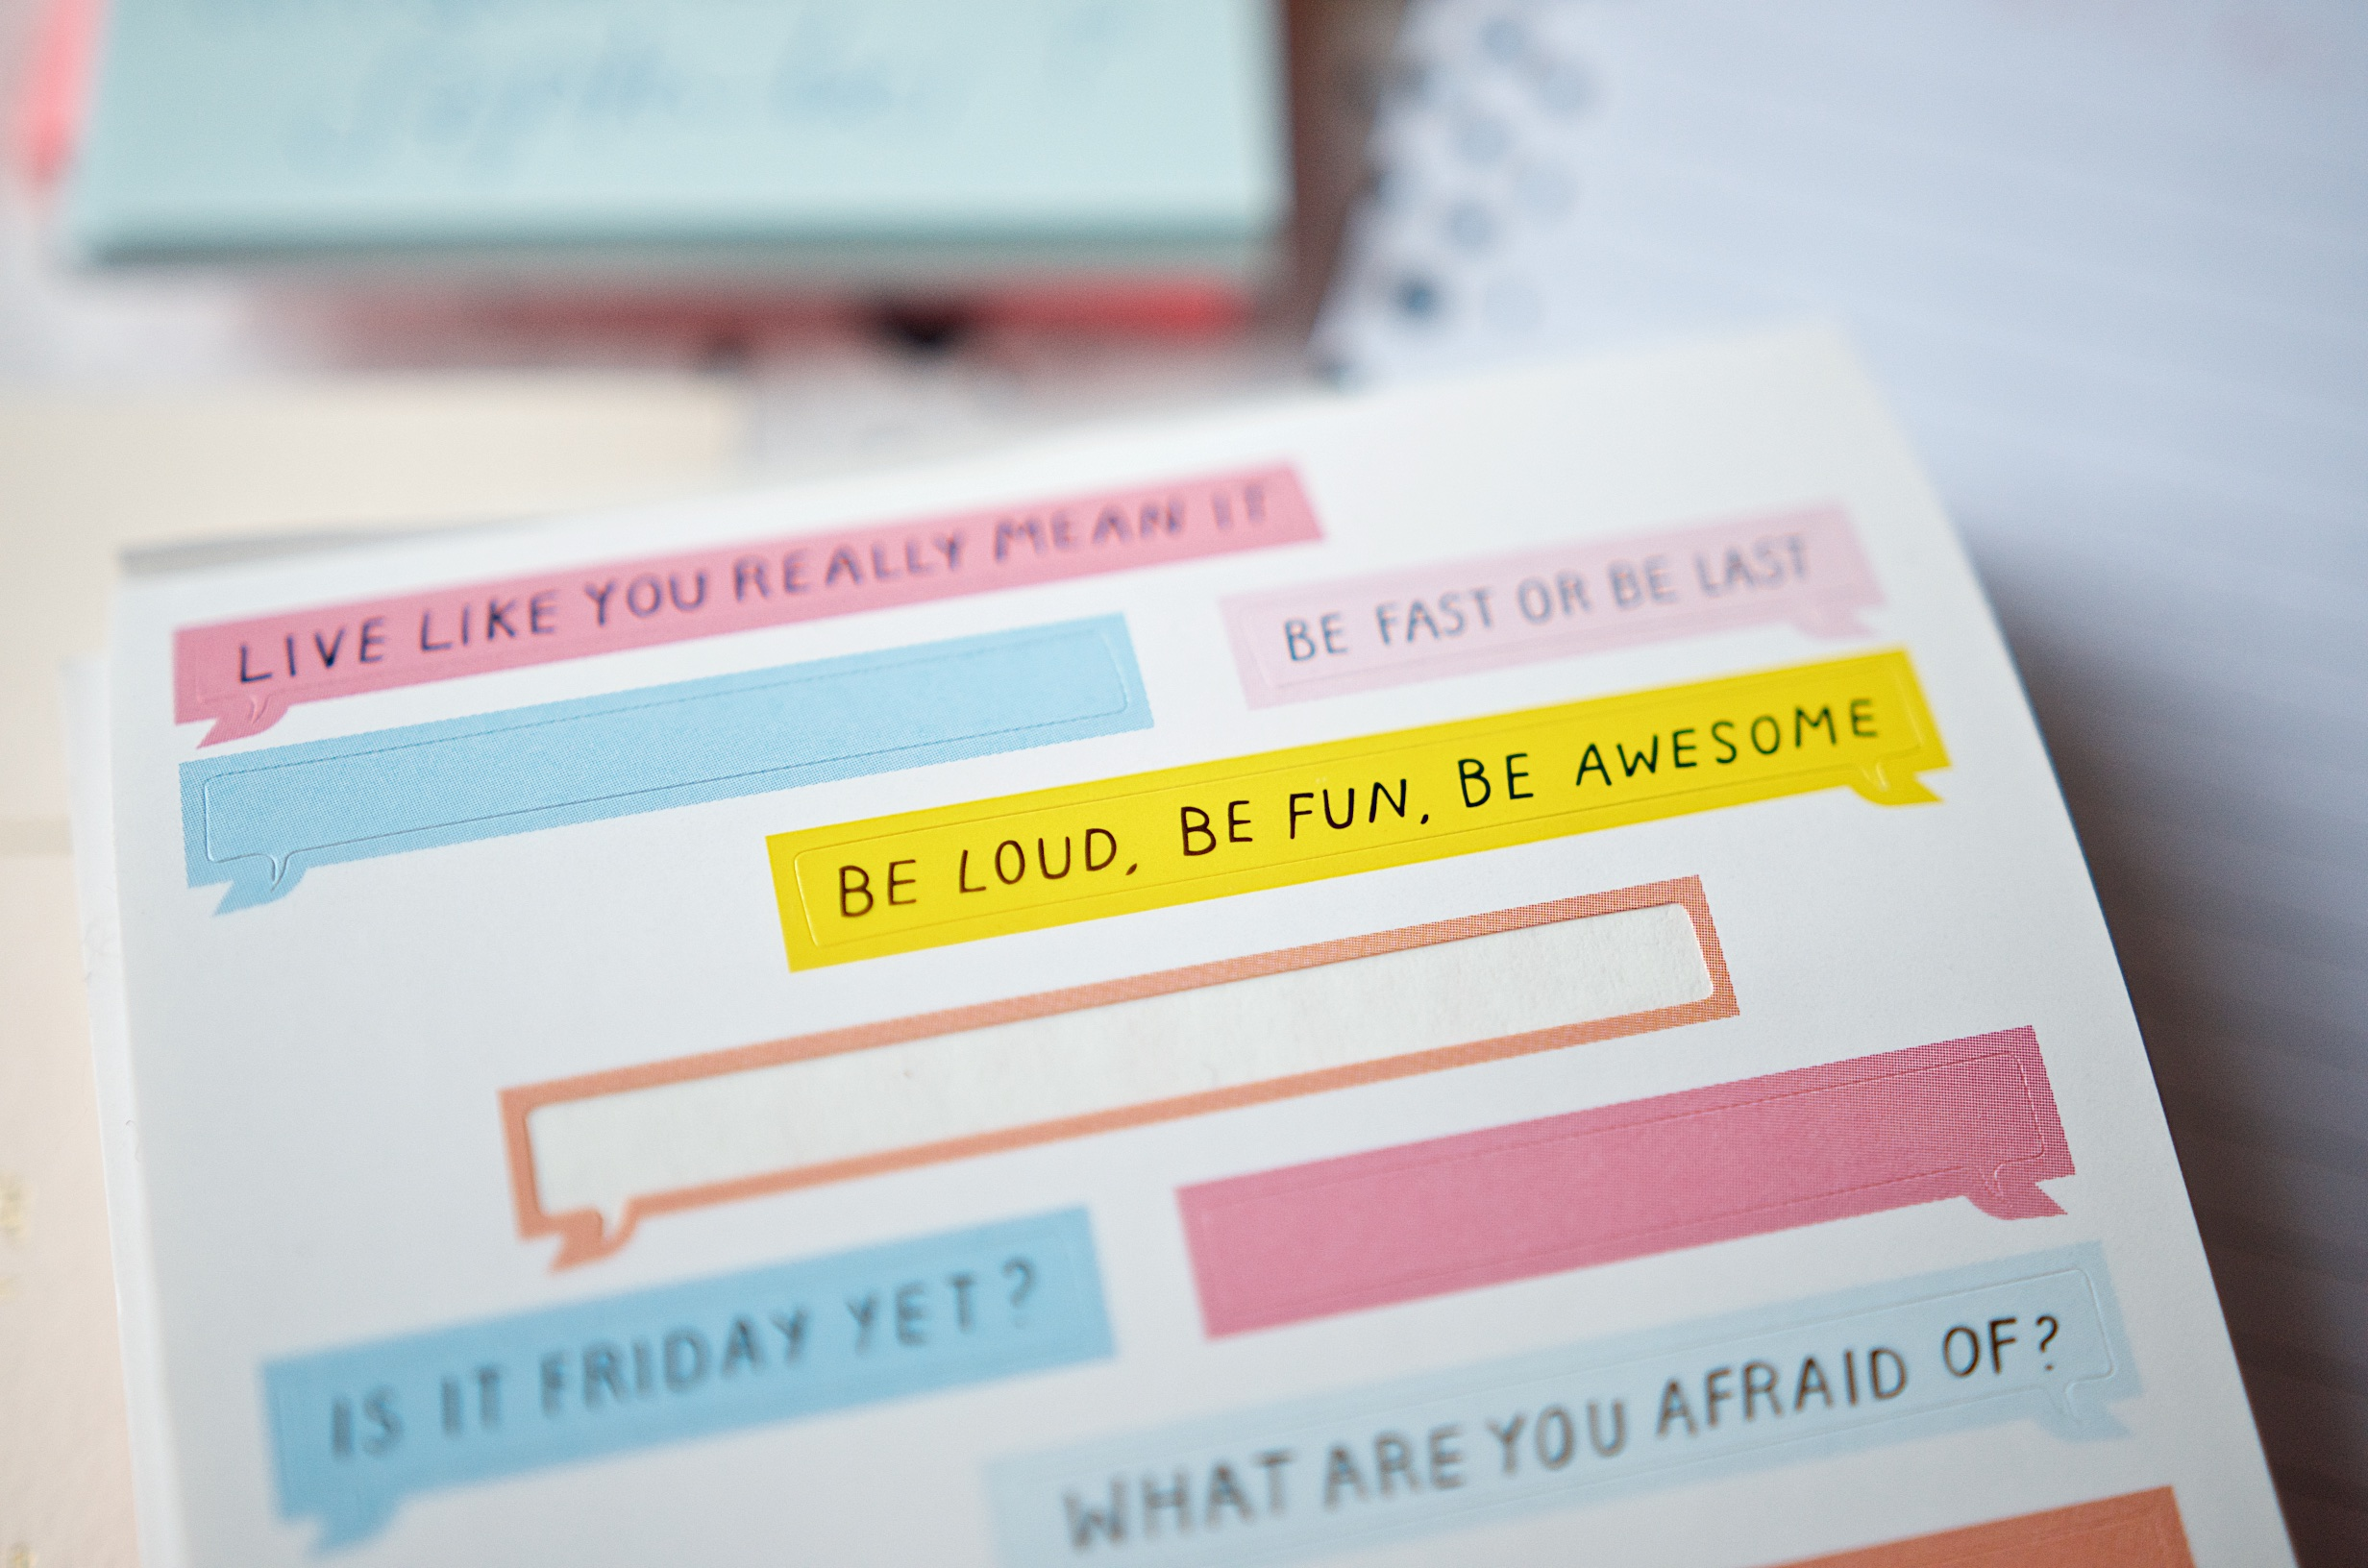 Be loud, be fun, be awesome. Be fast or be last. So wahr. Sticker für Journal von ban.do